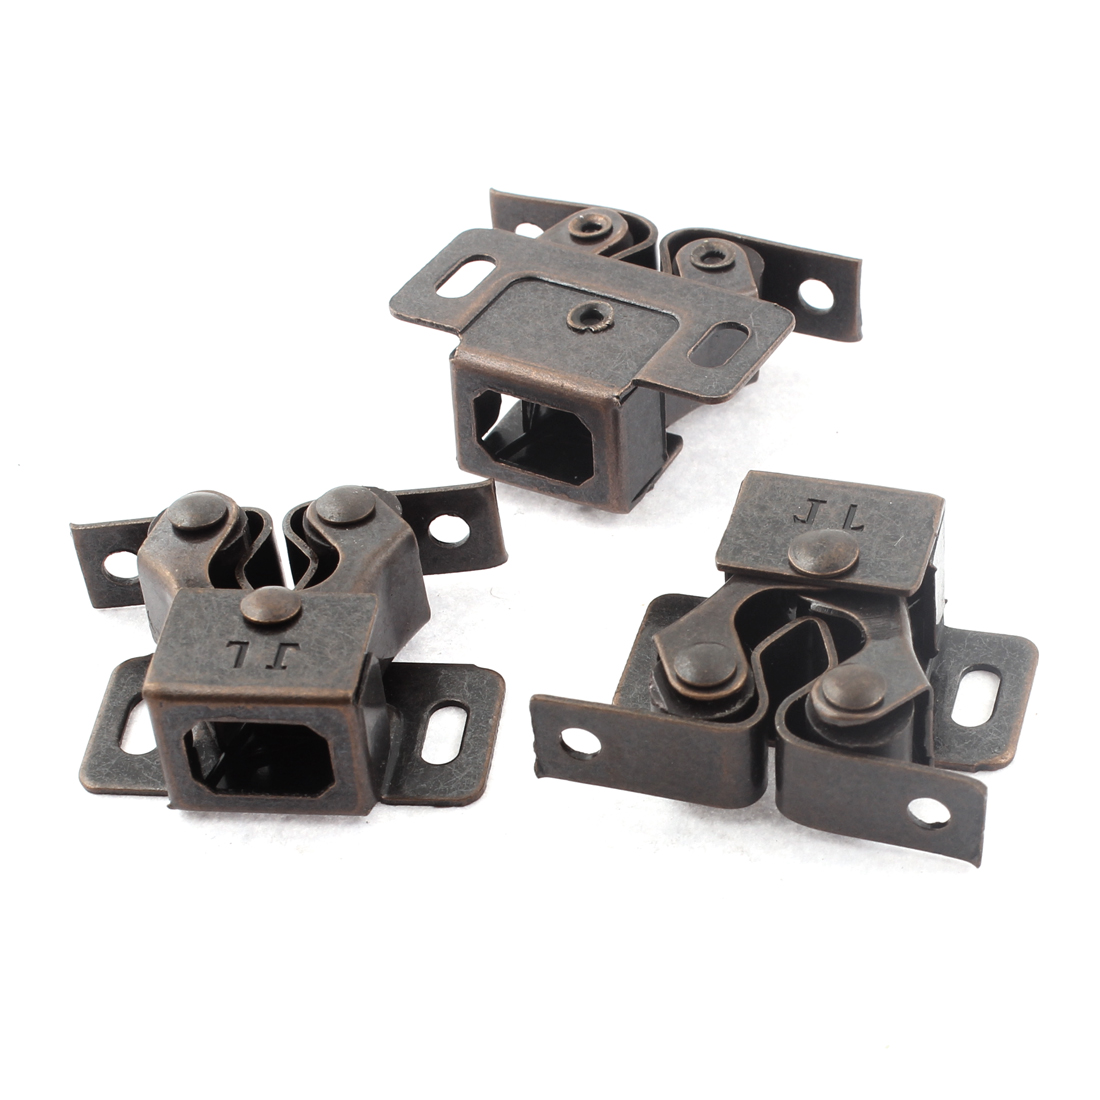 3pcs Retro Style Metal Furniture Cabinet Door Magnetic Catch Stop Stopper Latch